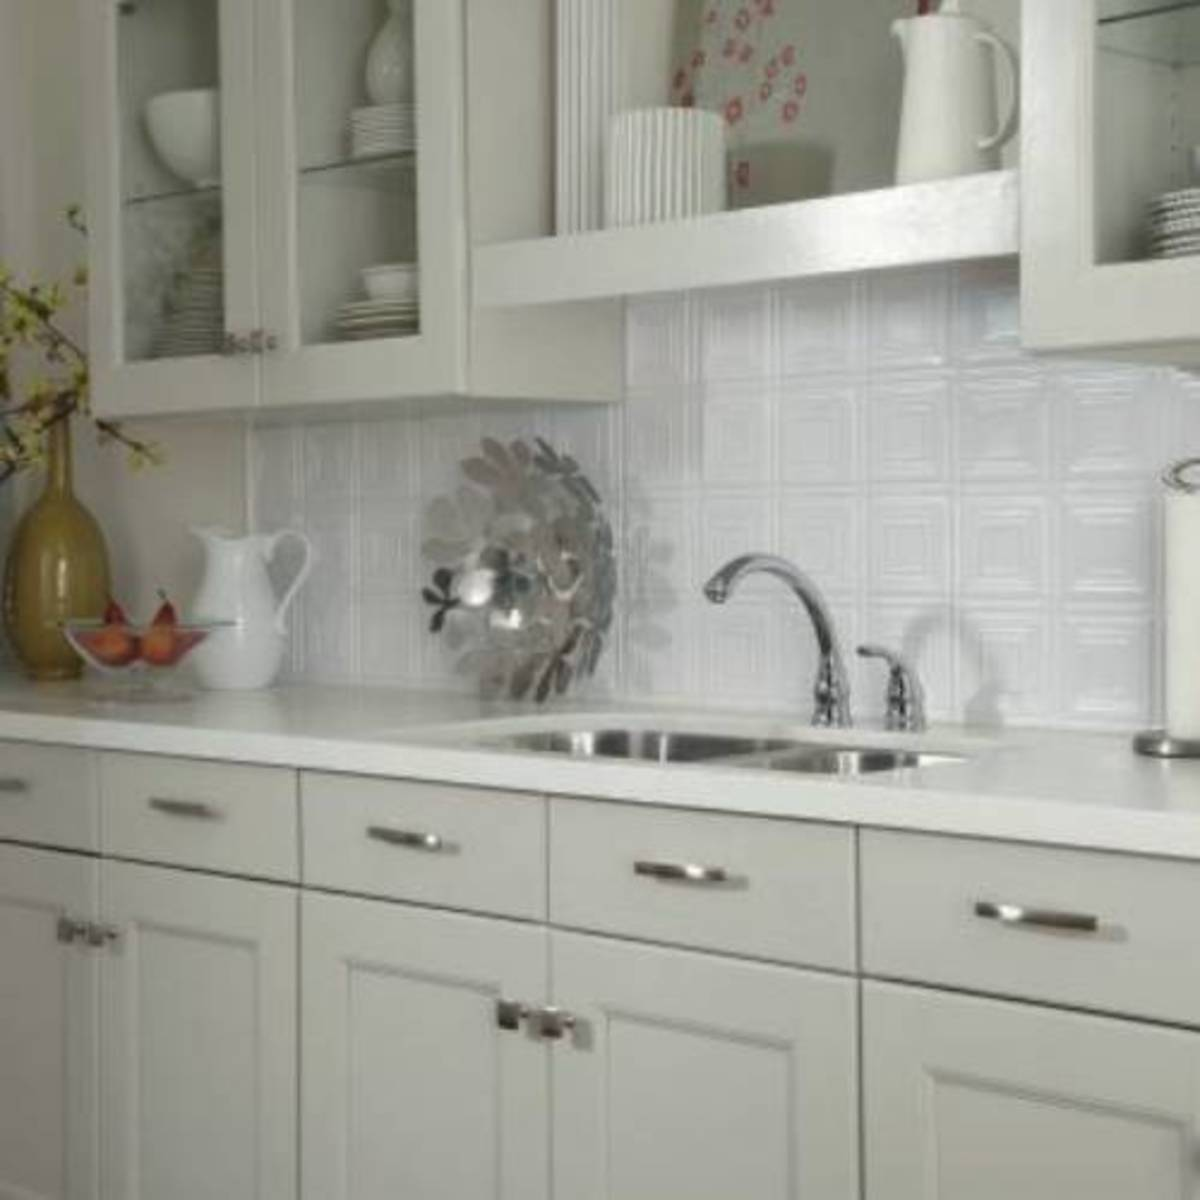 White backsplash tins are vintage styles on below the cabinets. The pressed tins are white backdrops.